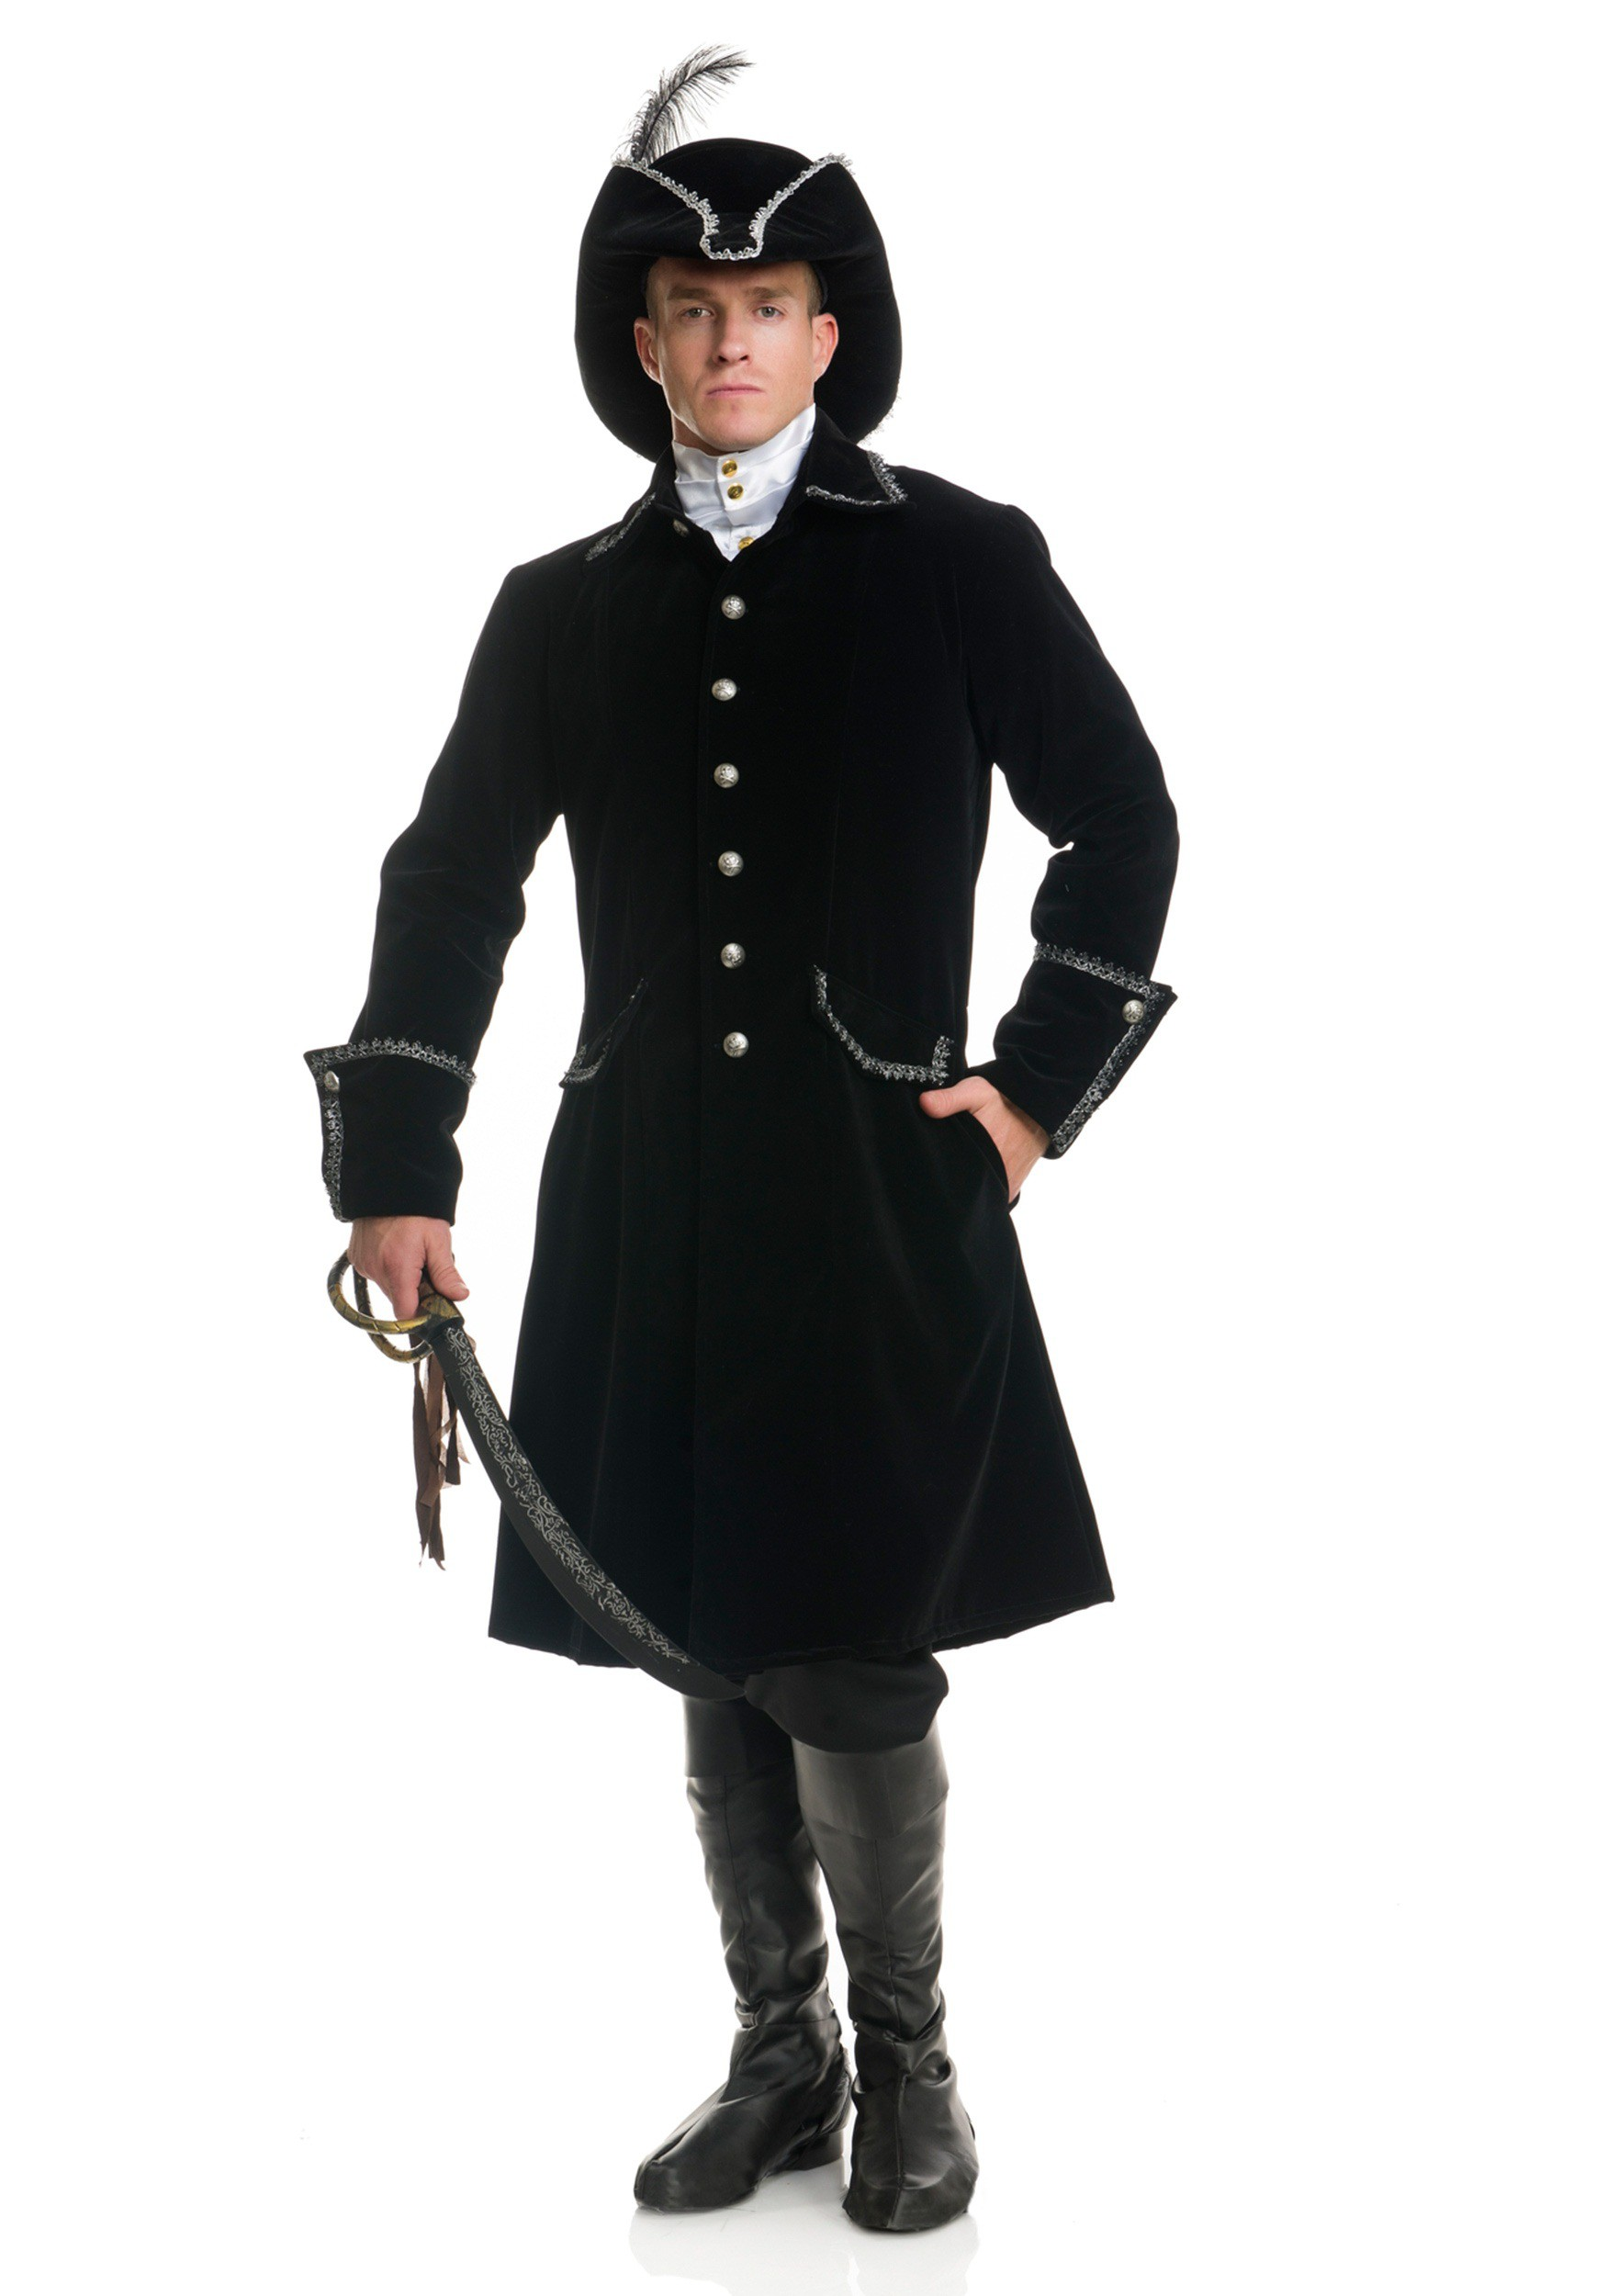 Deluxe Black Pirate Jacket with Pockets